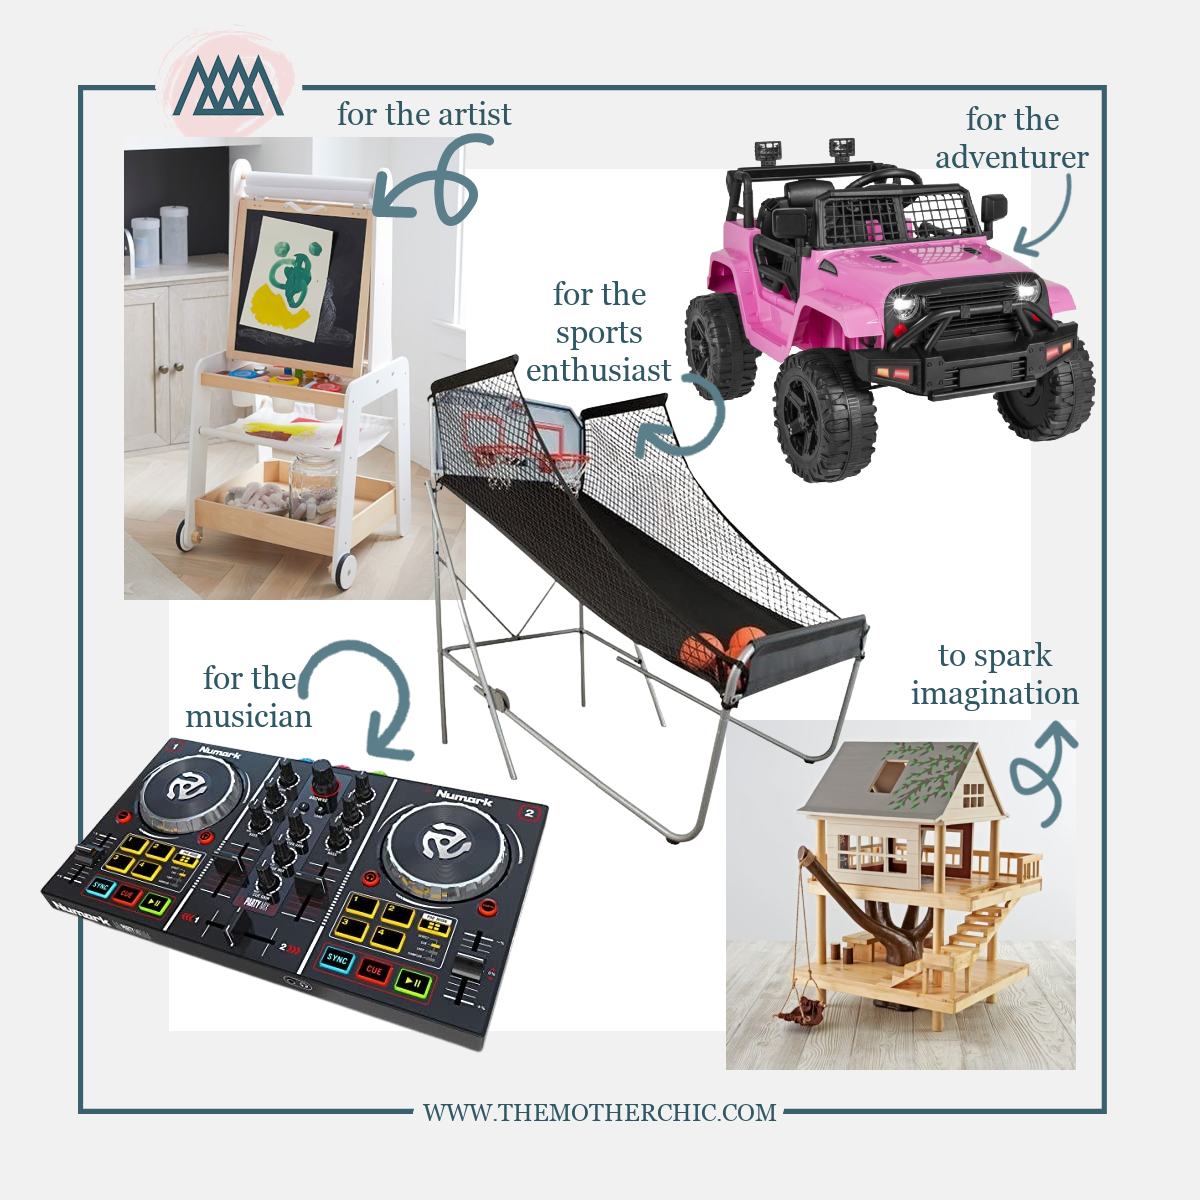 the motherchic wow gifts for kids